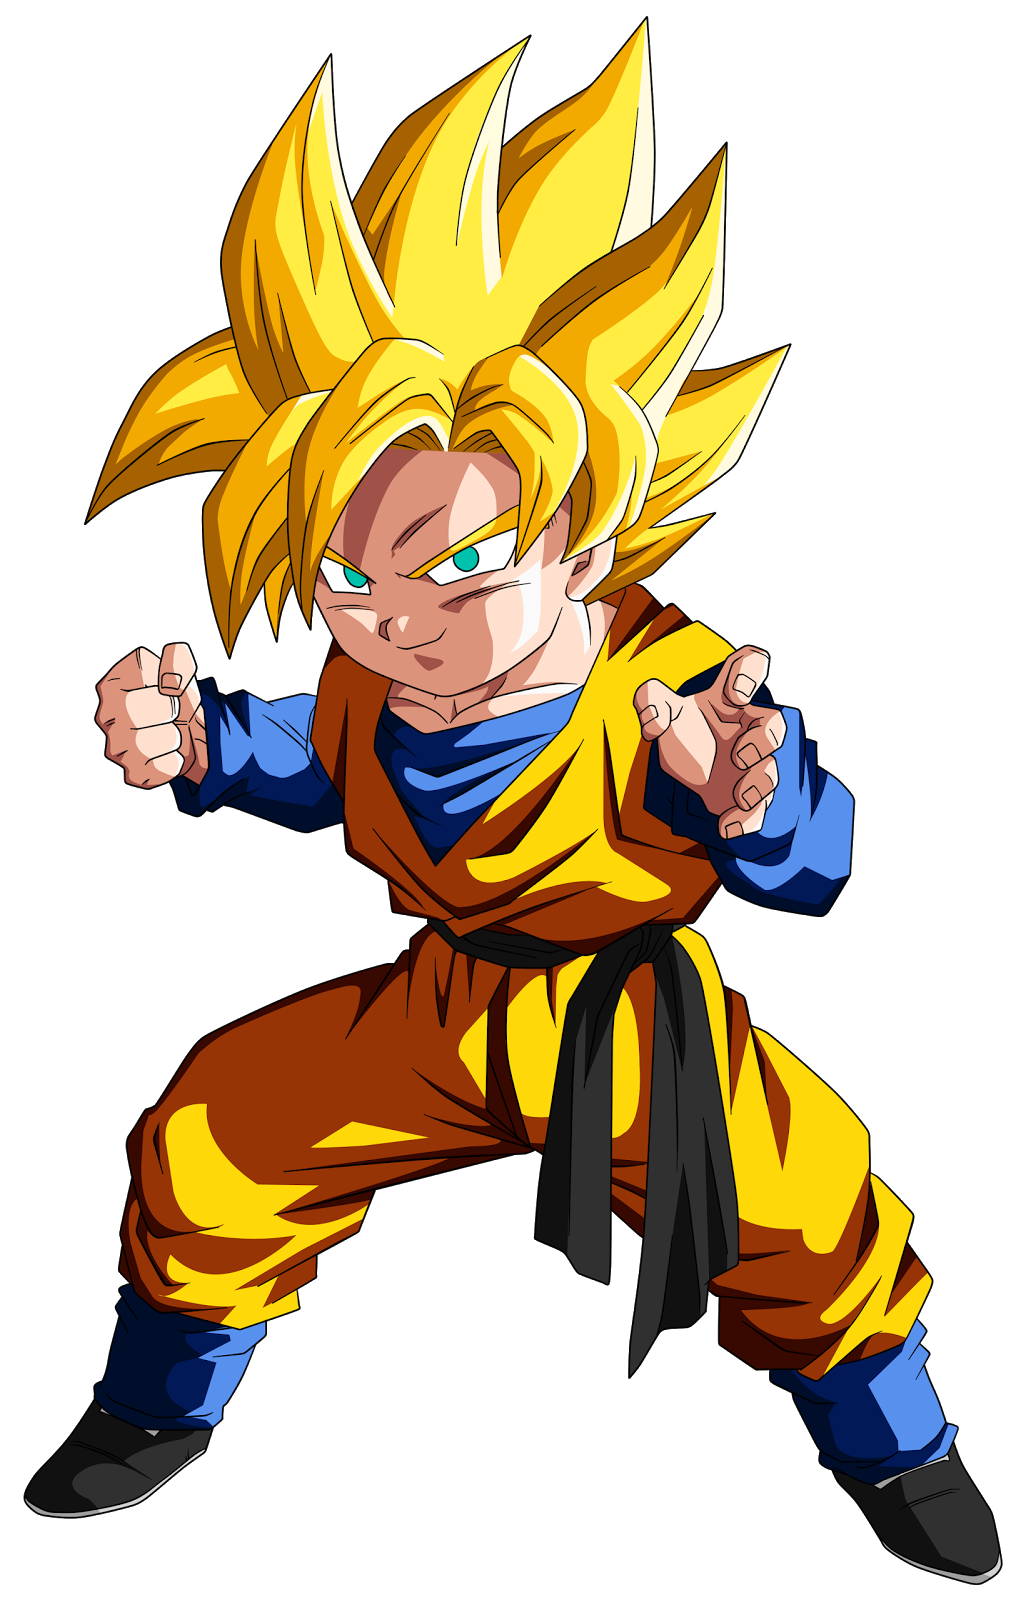 Free Wallpaper Images Gohan And Goten Wallpaper Anime Dragon Ball Super Dragon Ball Artwork Anime Dragon Ball